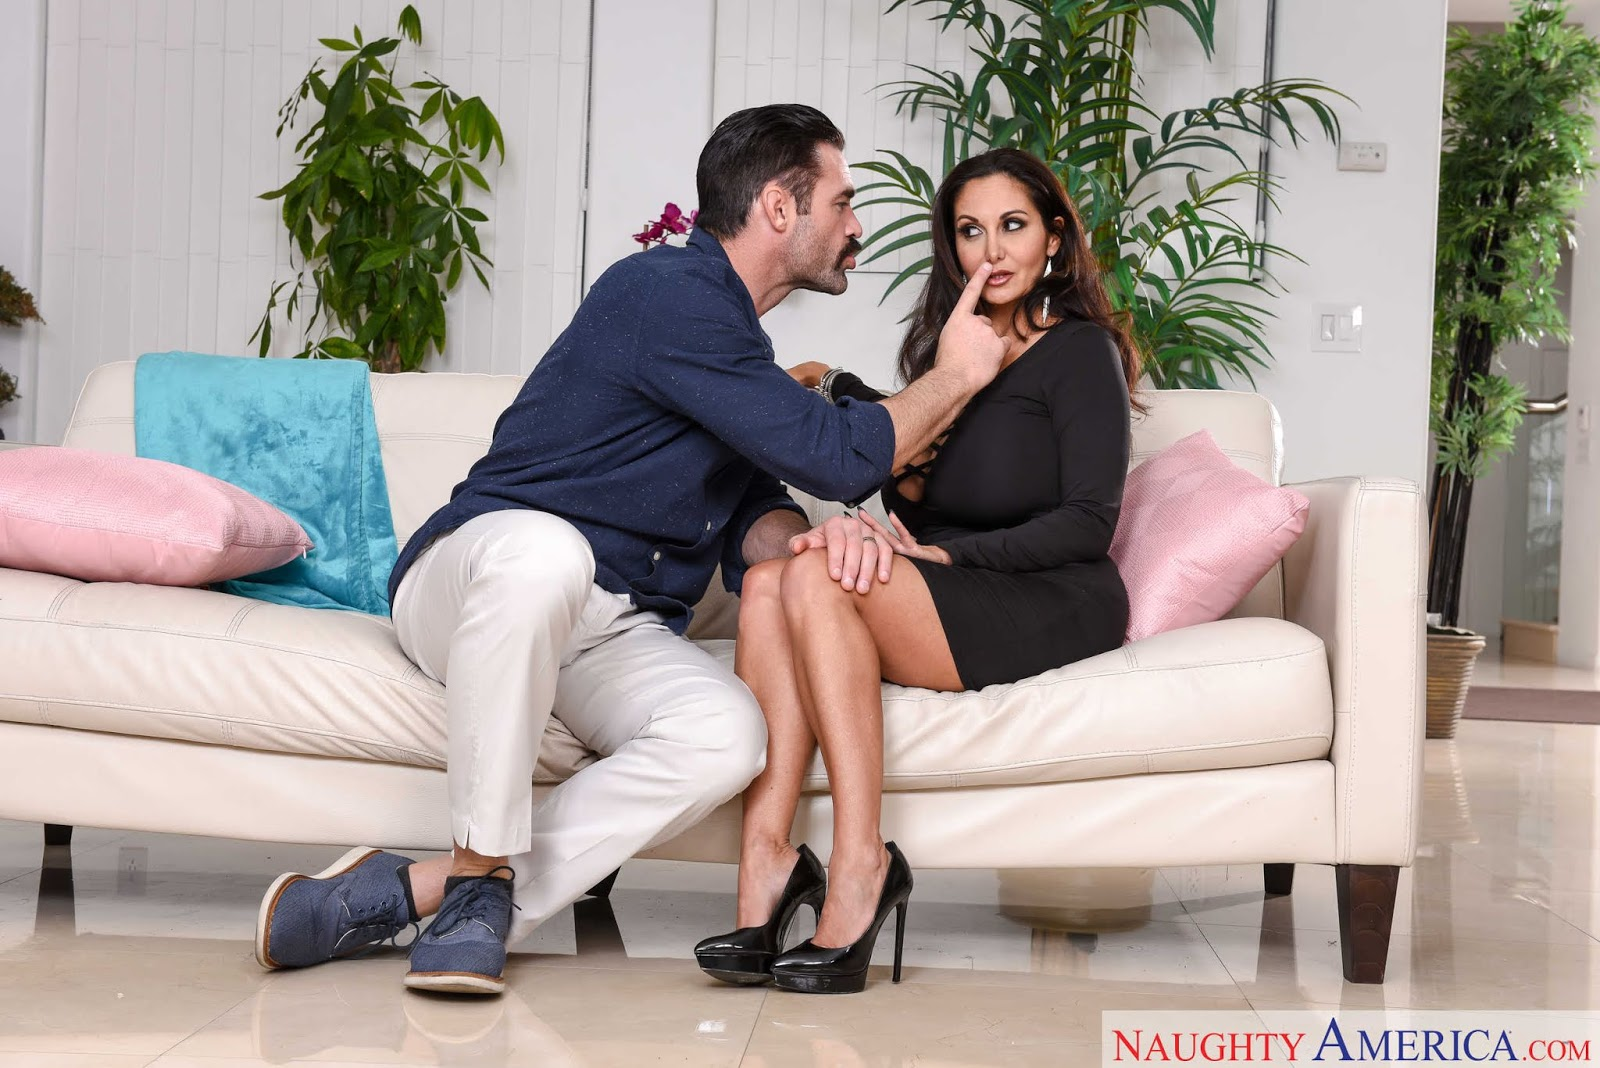 Ava Addams : Fucking in the couch ## NAUGHTY AMERICA 06rklaw6zp.jpg